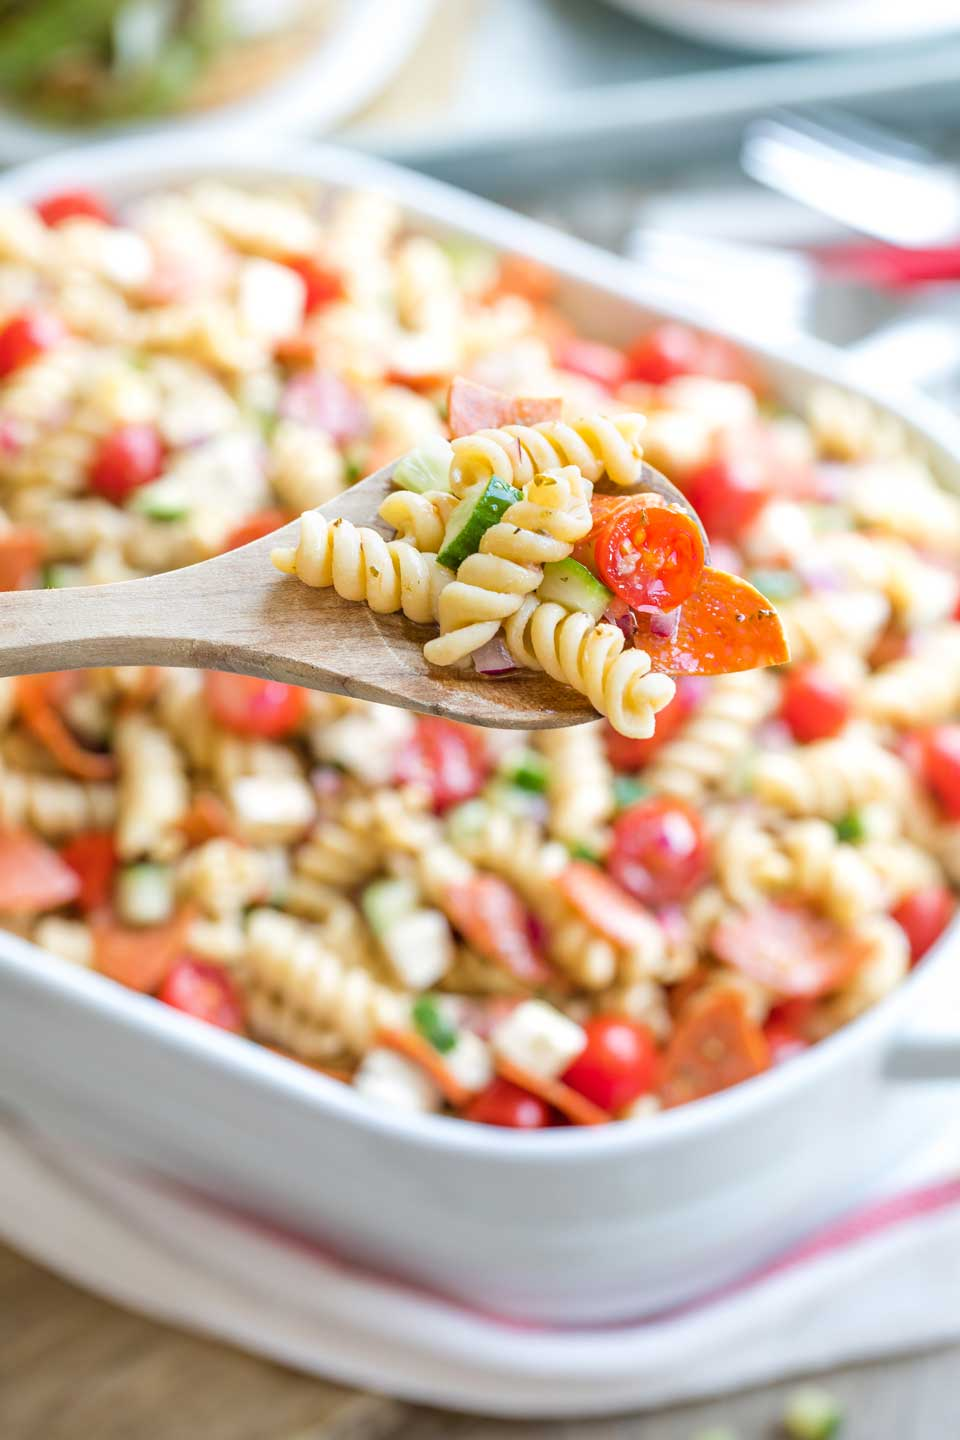 Closeup of a wooden serving spoon holding a scoop of pasta salad with the serving bowl in the background.